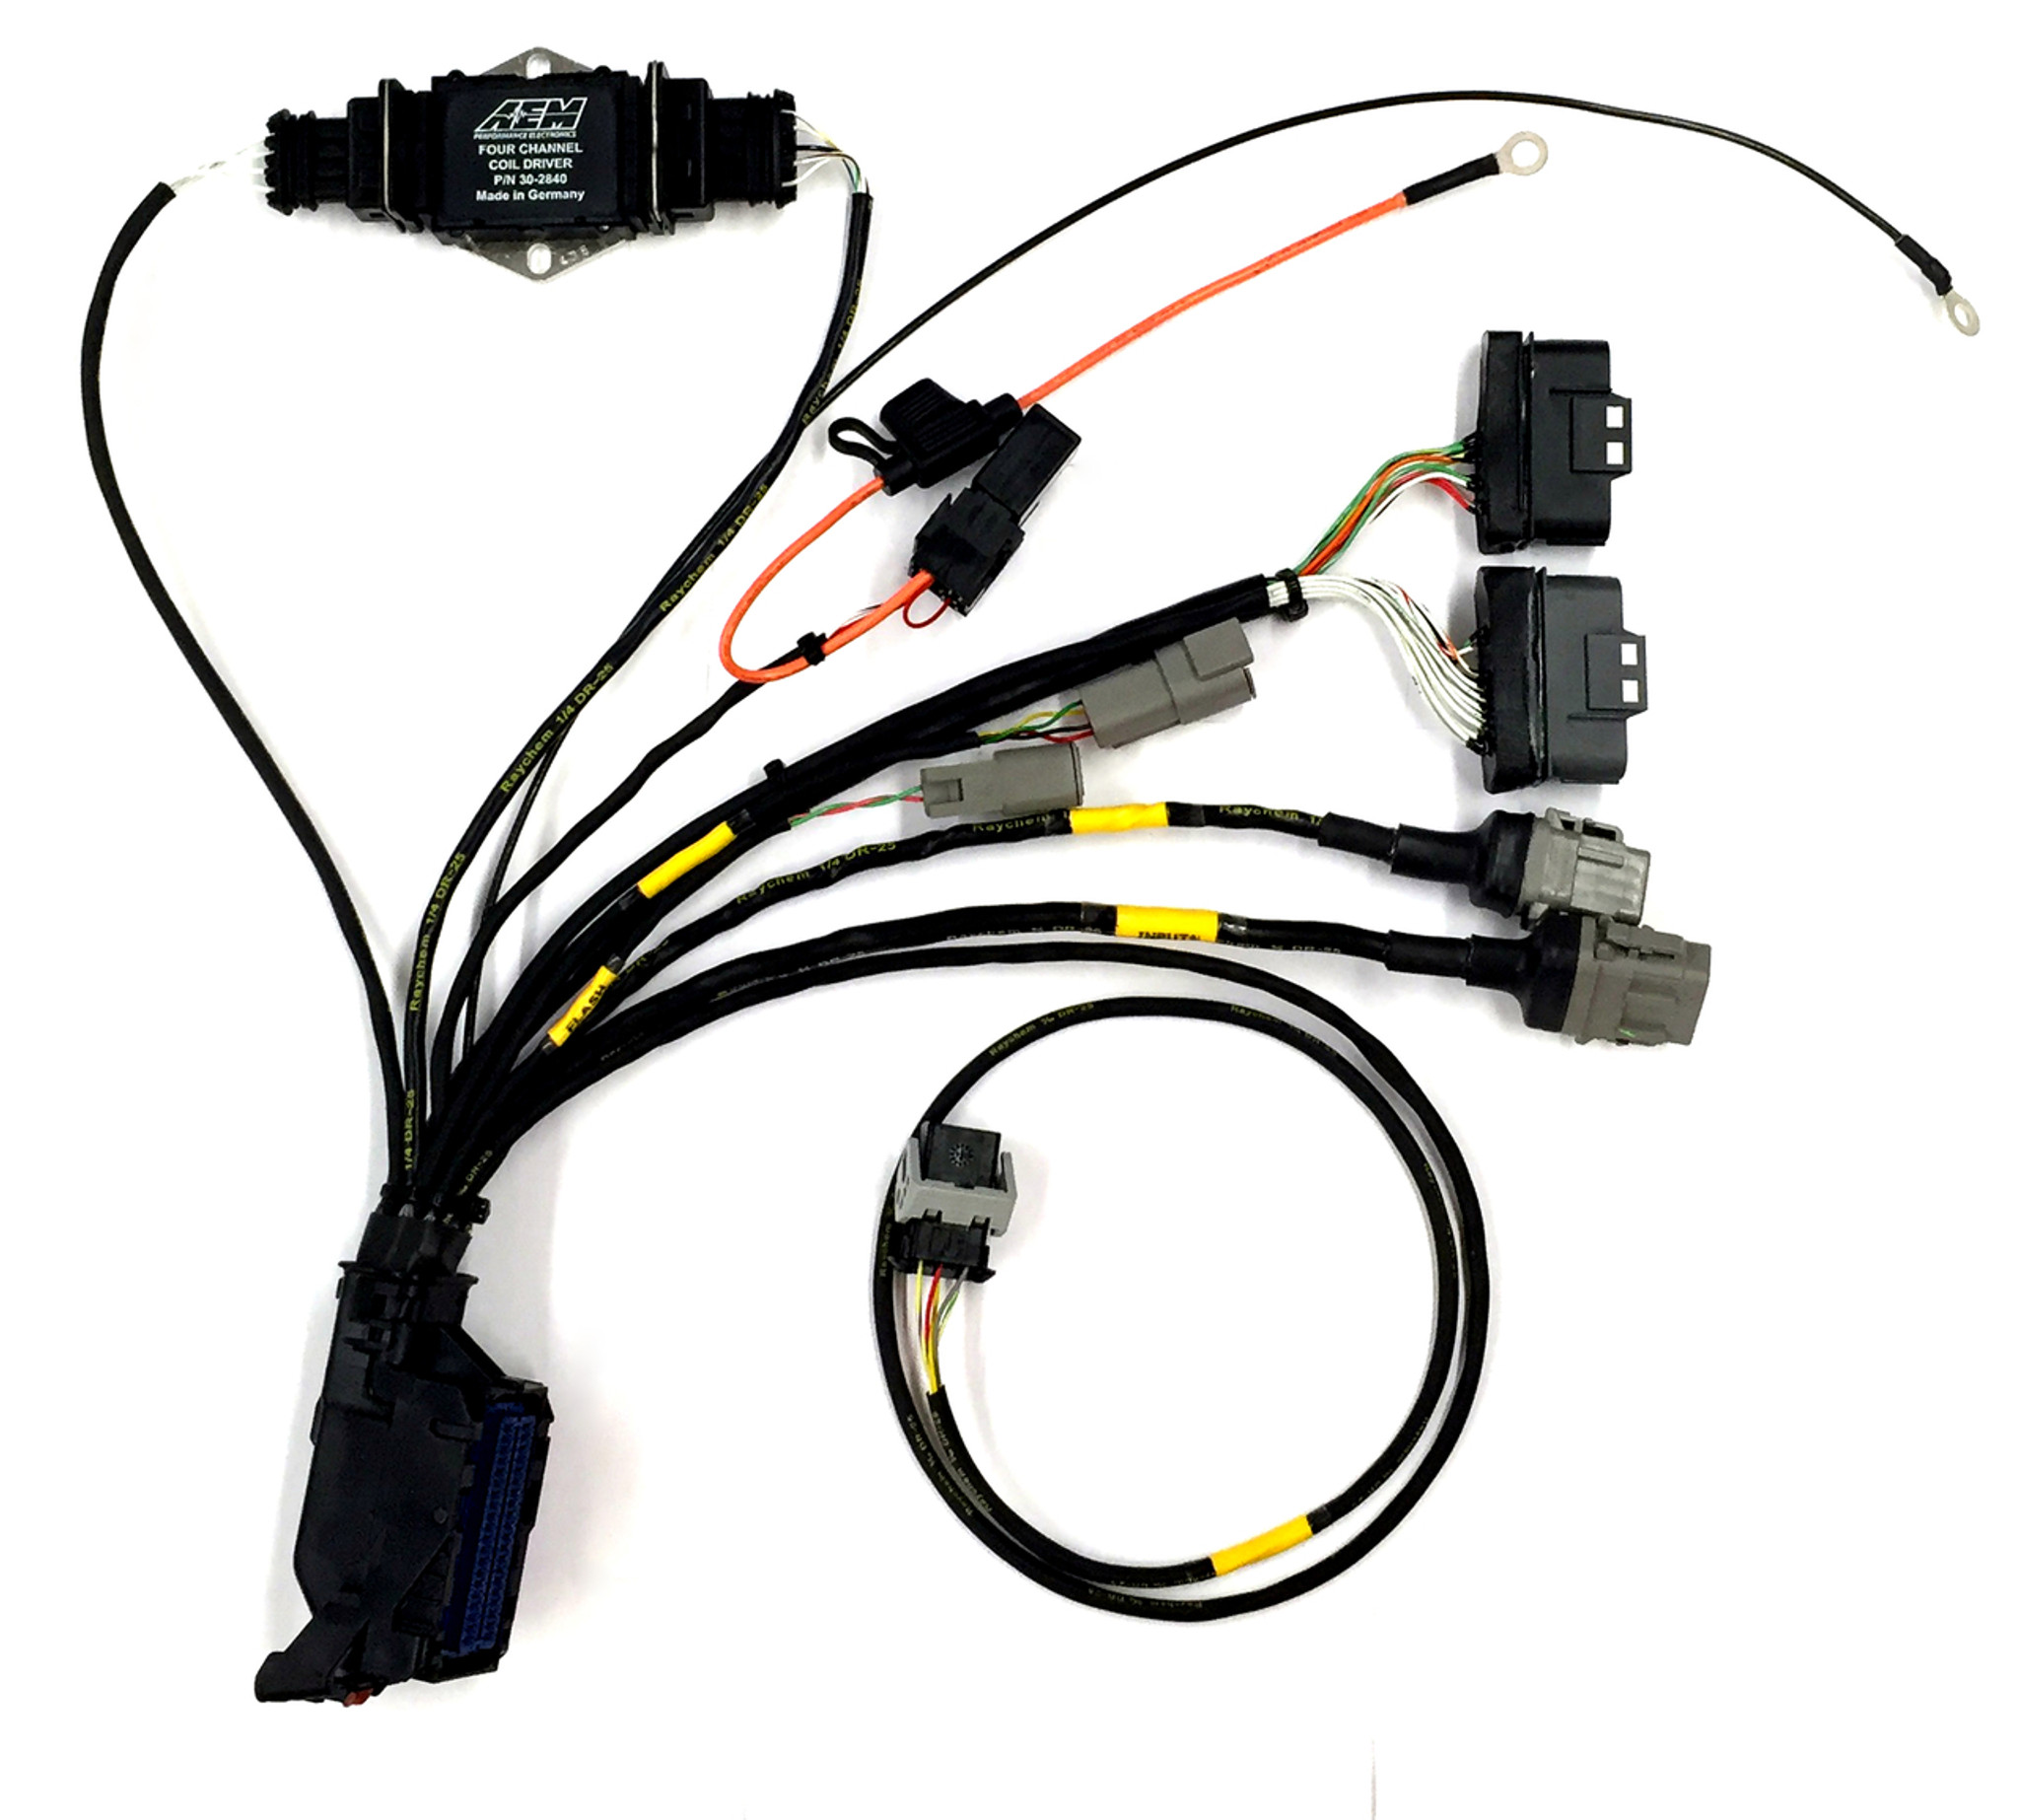 infinity ecu plug and play wiring harness shop htp p28 ecu wiring harness ecu wiring harness [ 2048 x 1846 Pixel ]